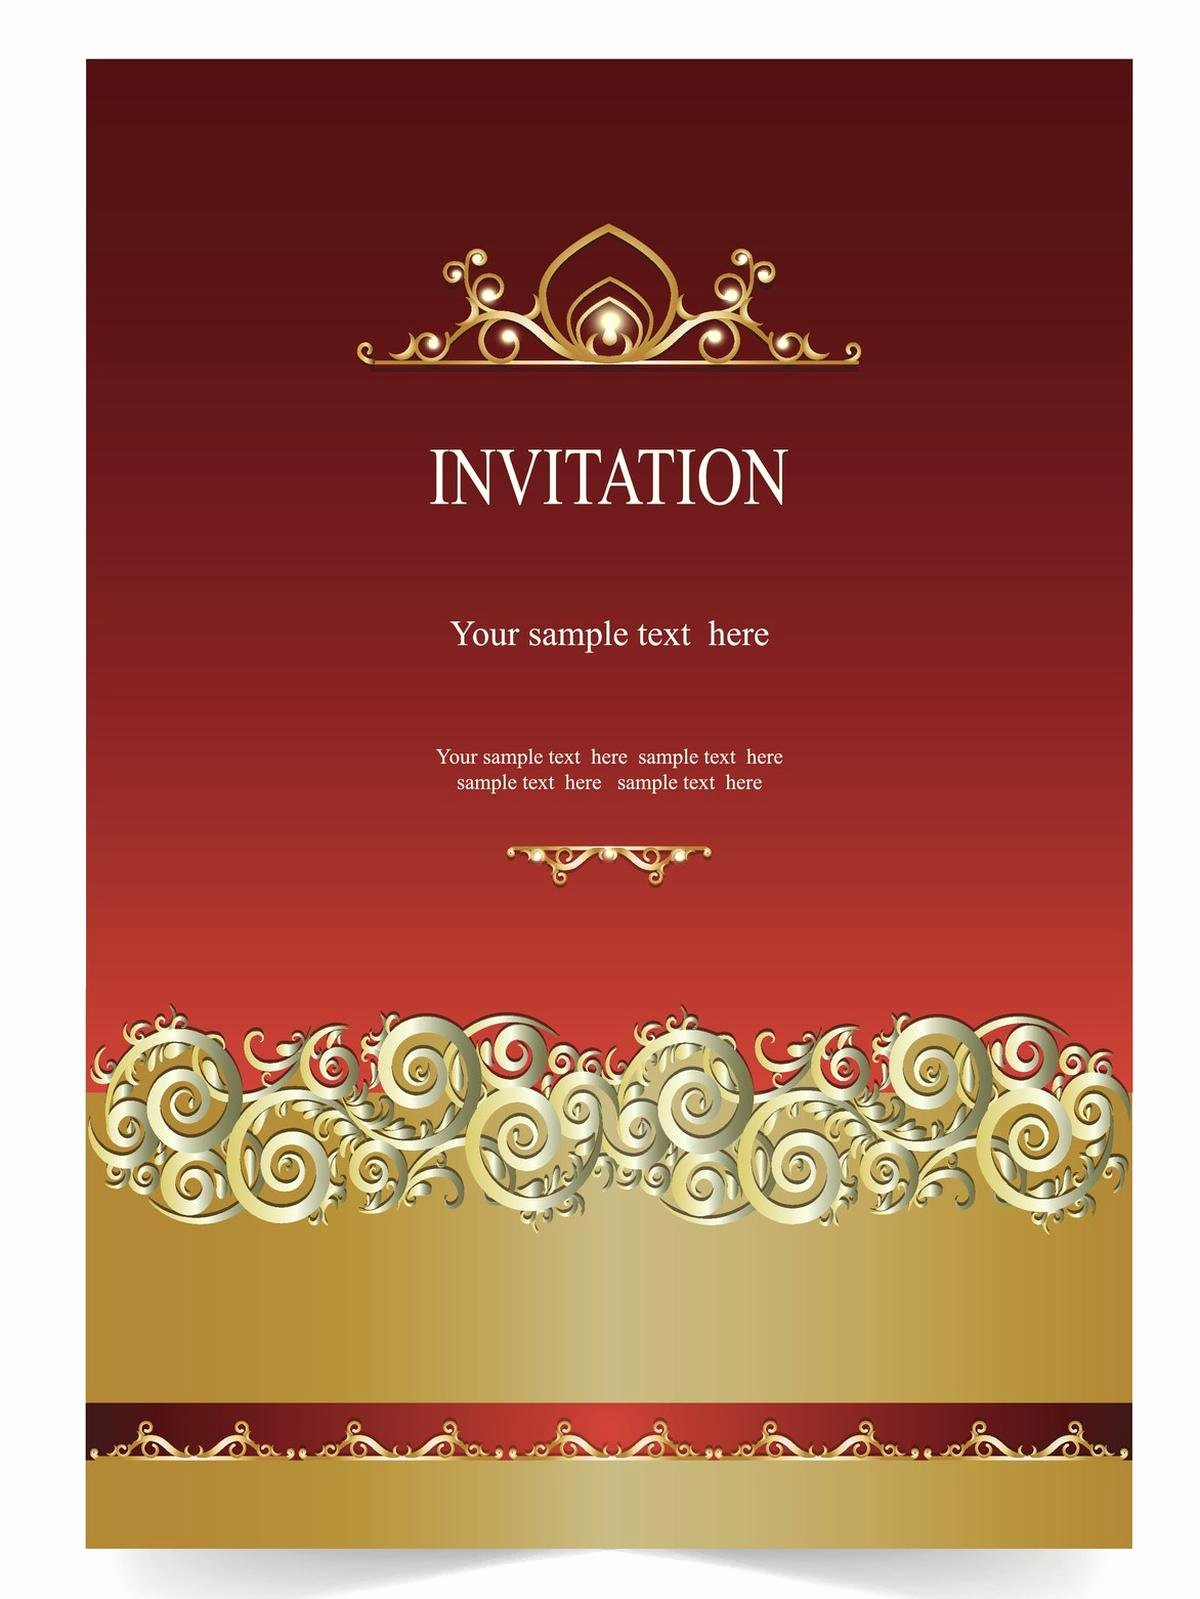 Farewell Party Invitations Templates Best Of Invitation Templates that are Perfect for Your Farewell Party